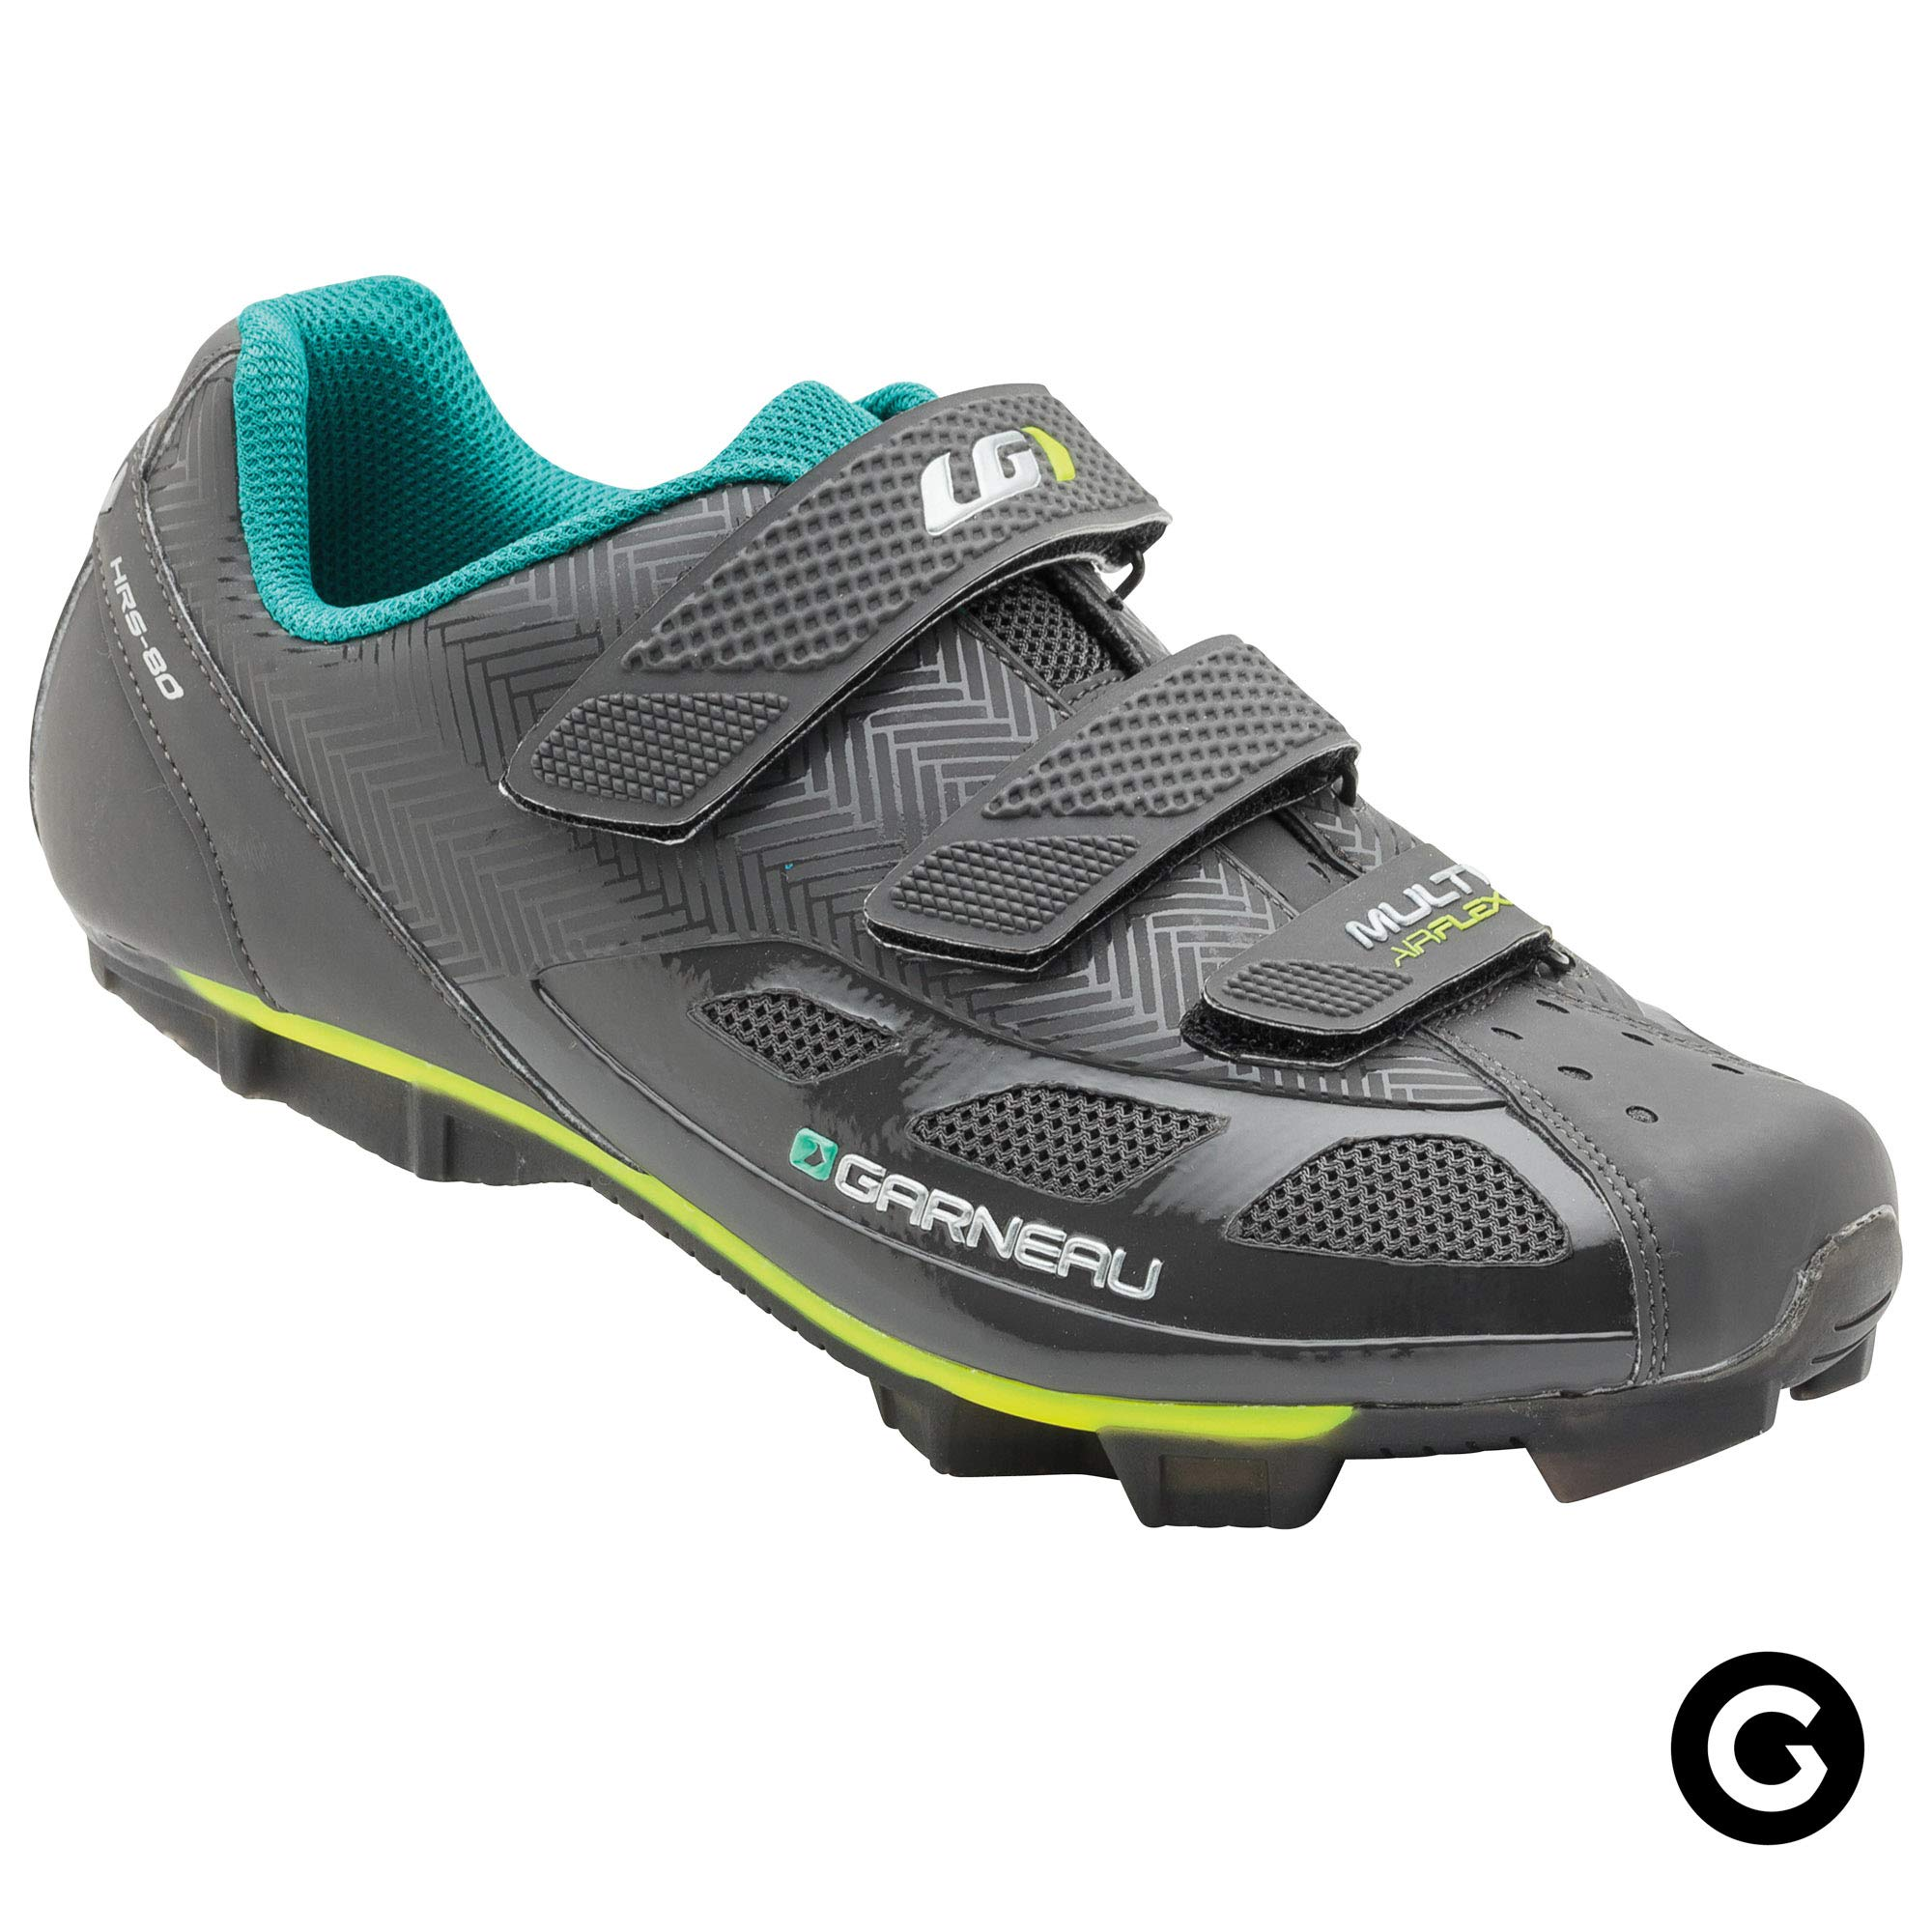 Louis Garneau Women's Multi Air Flex Bike Shoes for Indoor Cycling, Commuting and MTB, SPD Cleats Compatible with MTB Pedals, Asphalt, US (6.5), EU (37) by Louis Garneau